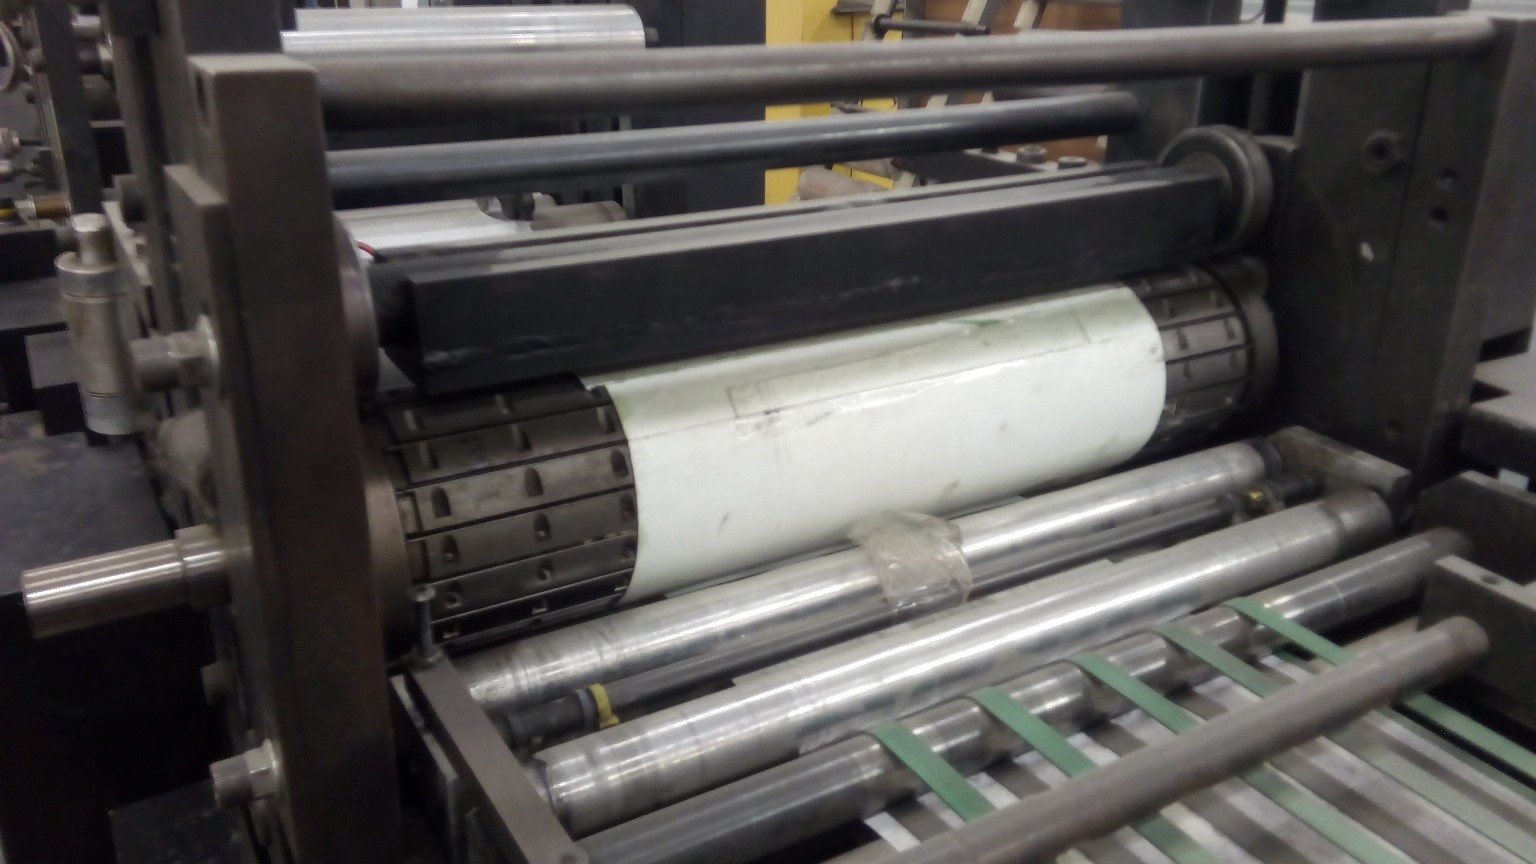 Propheteer 1800 - Used Flexo Printing Presses and Used Flexographic Equipment-3